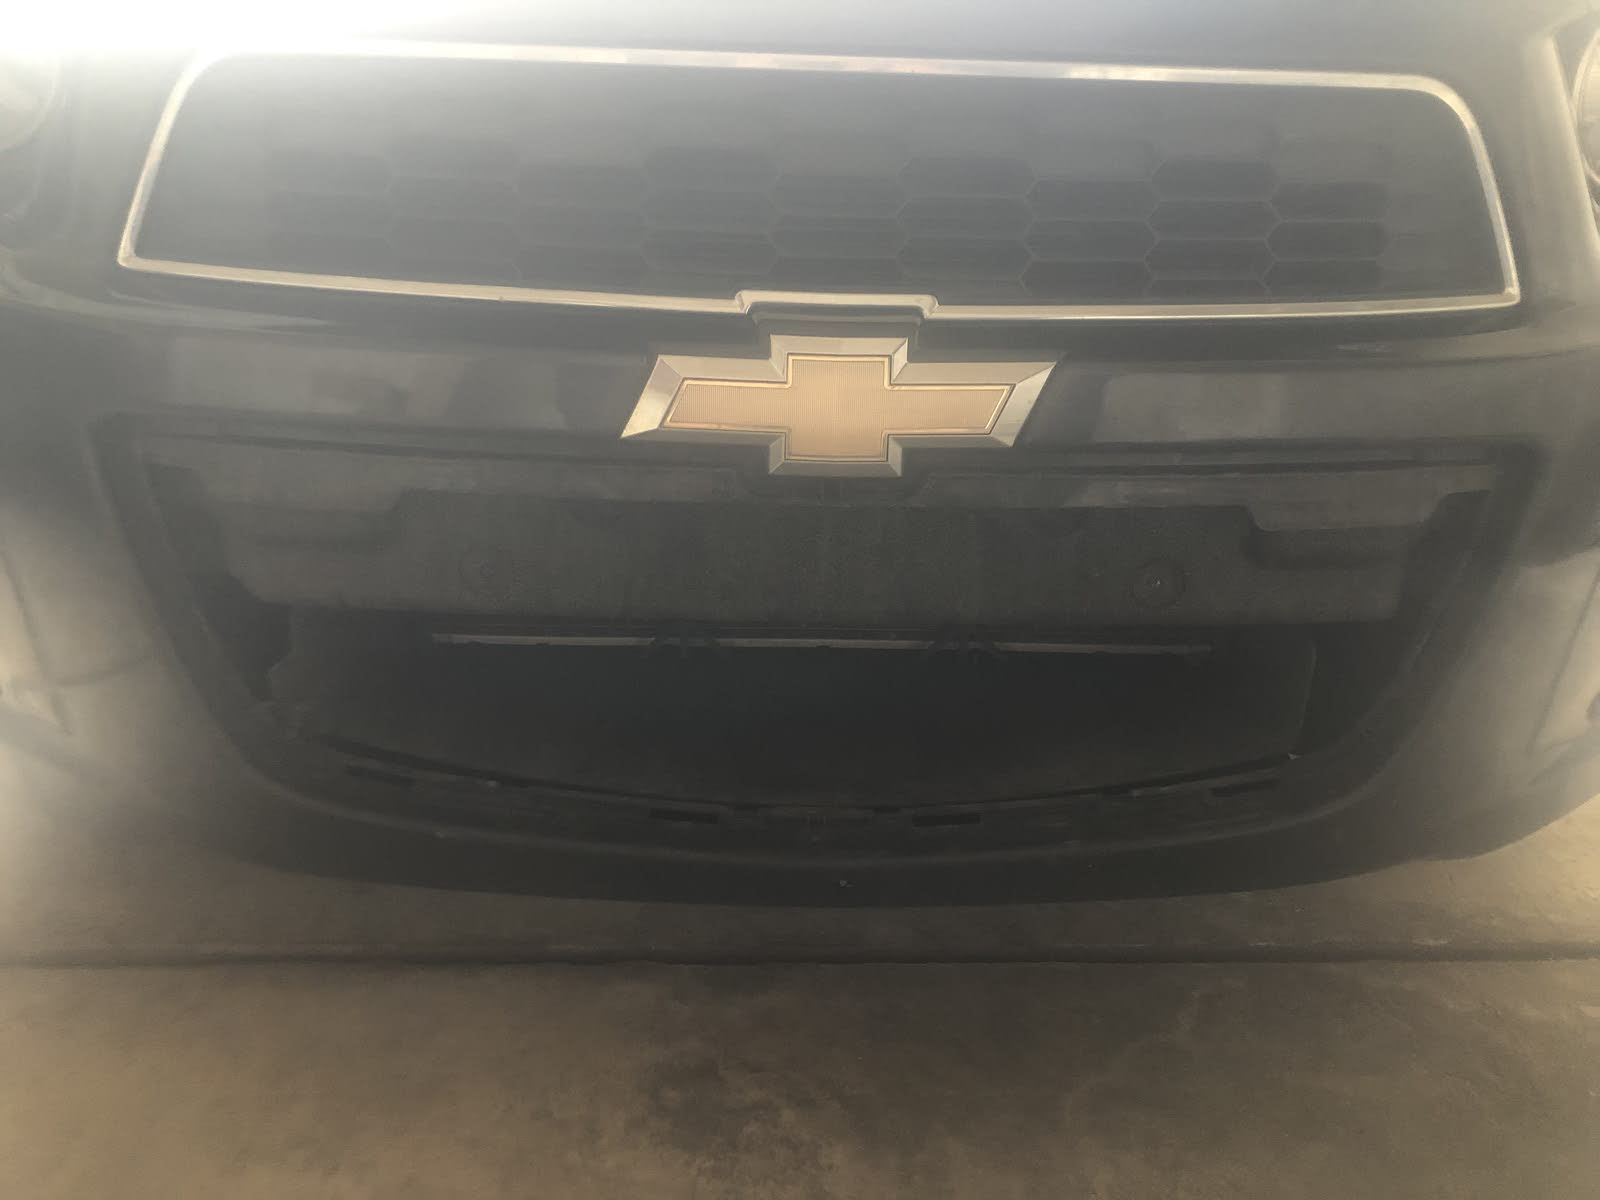 Chevrolet Sonic Questions - Front Bumper Lower Grille fell